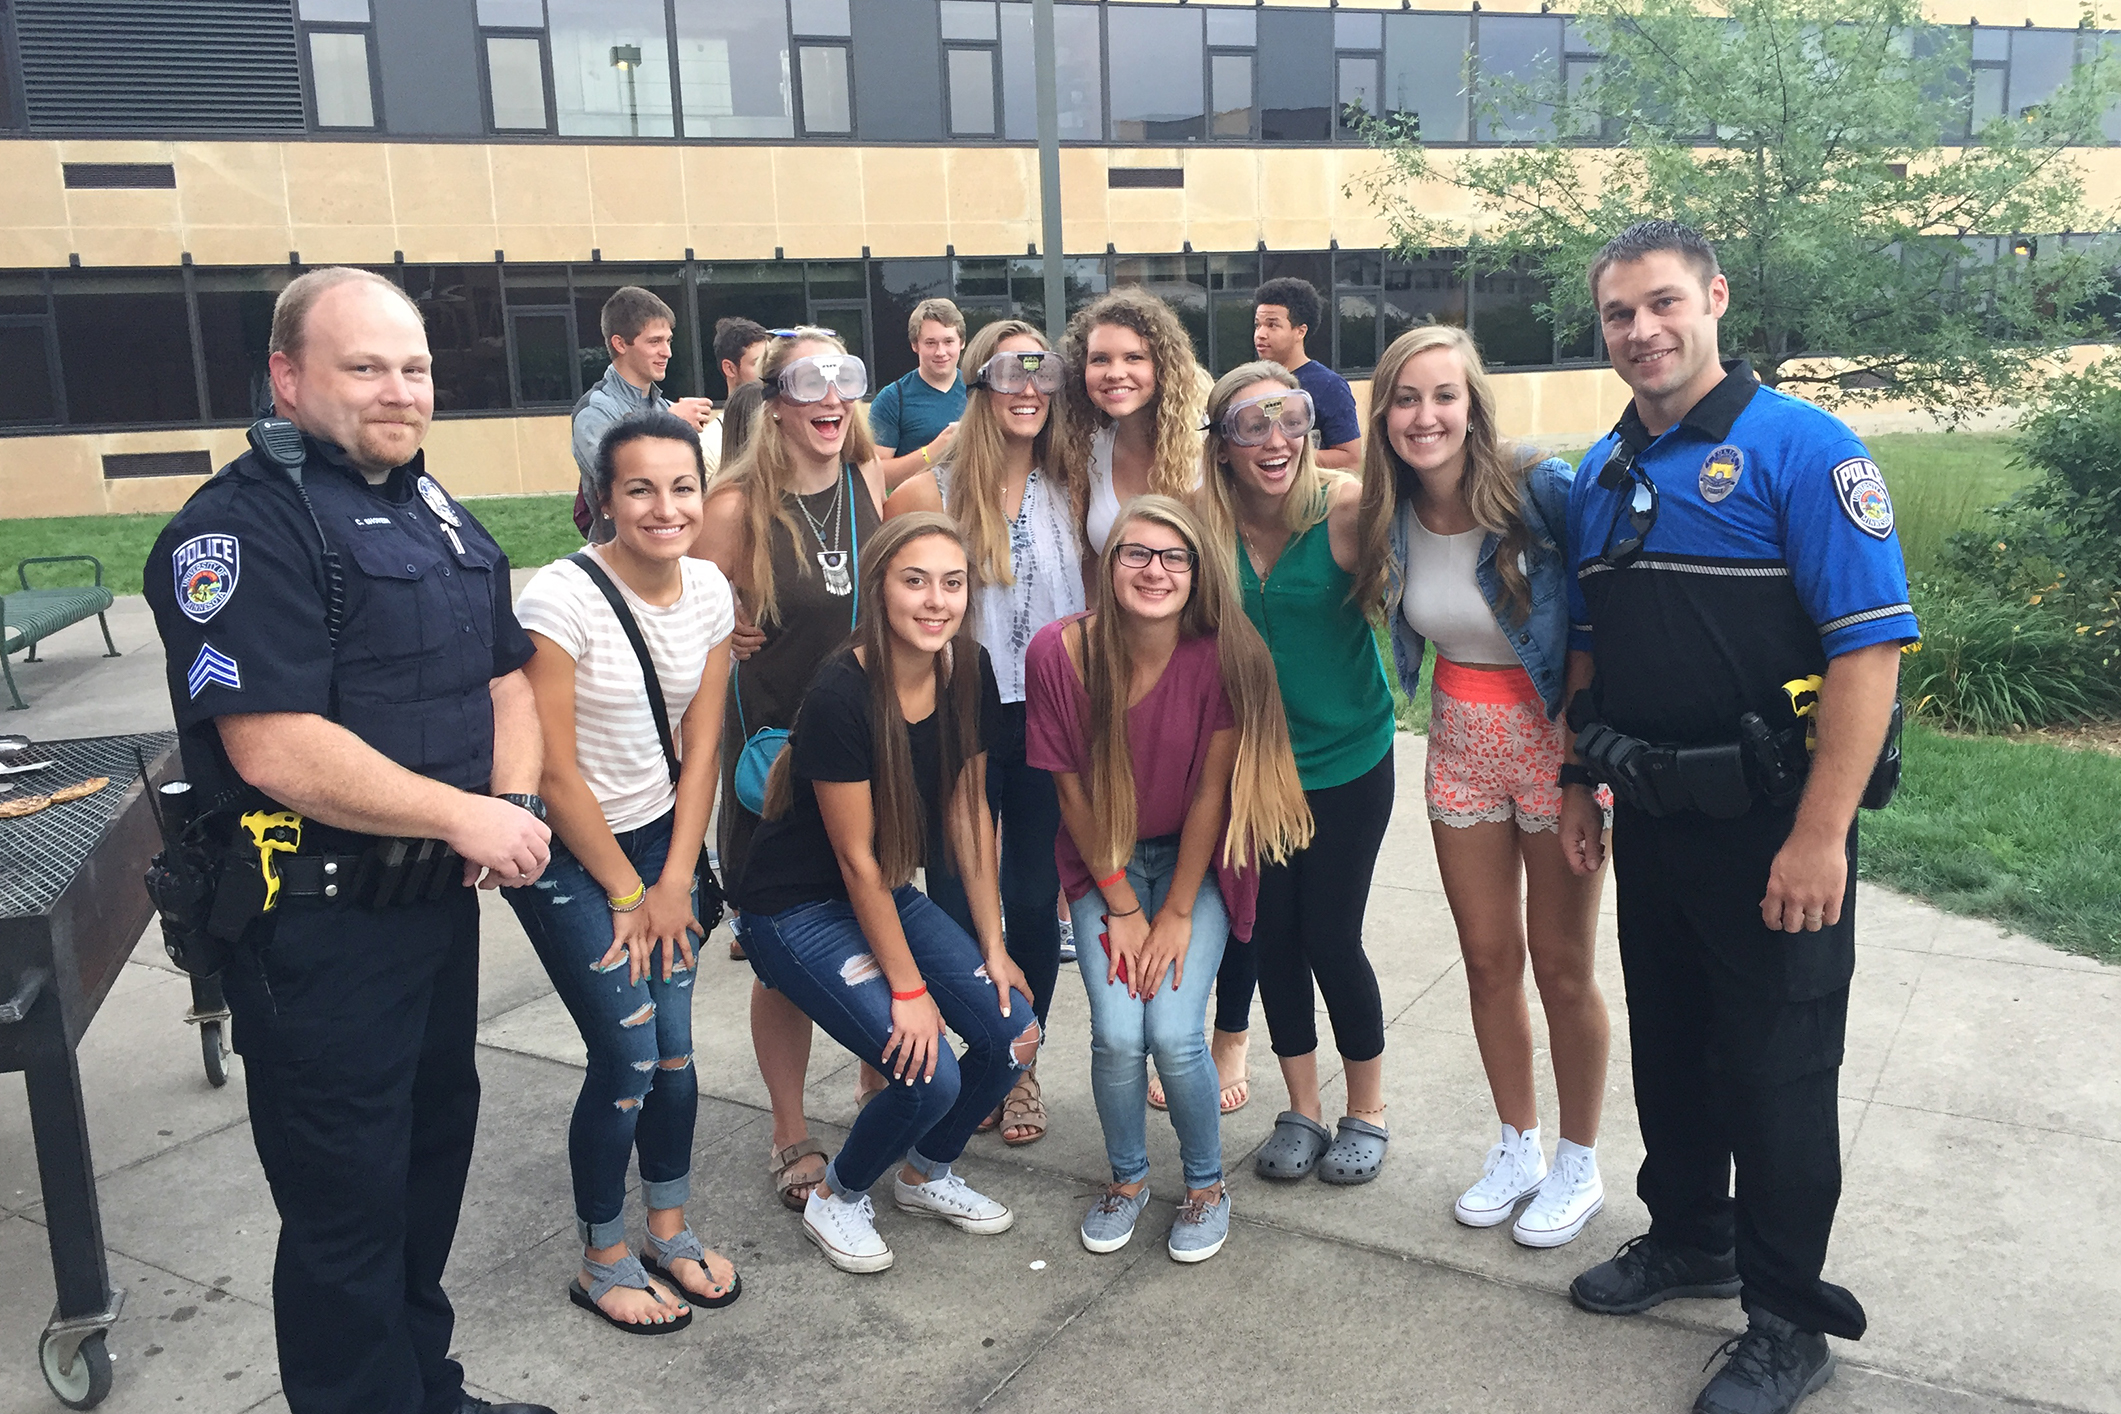 UMDPD officers with students